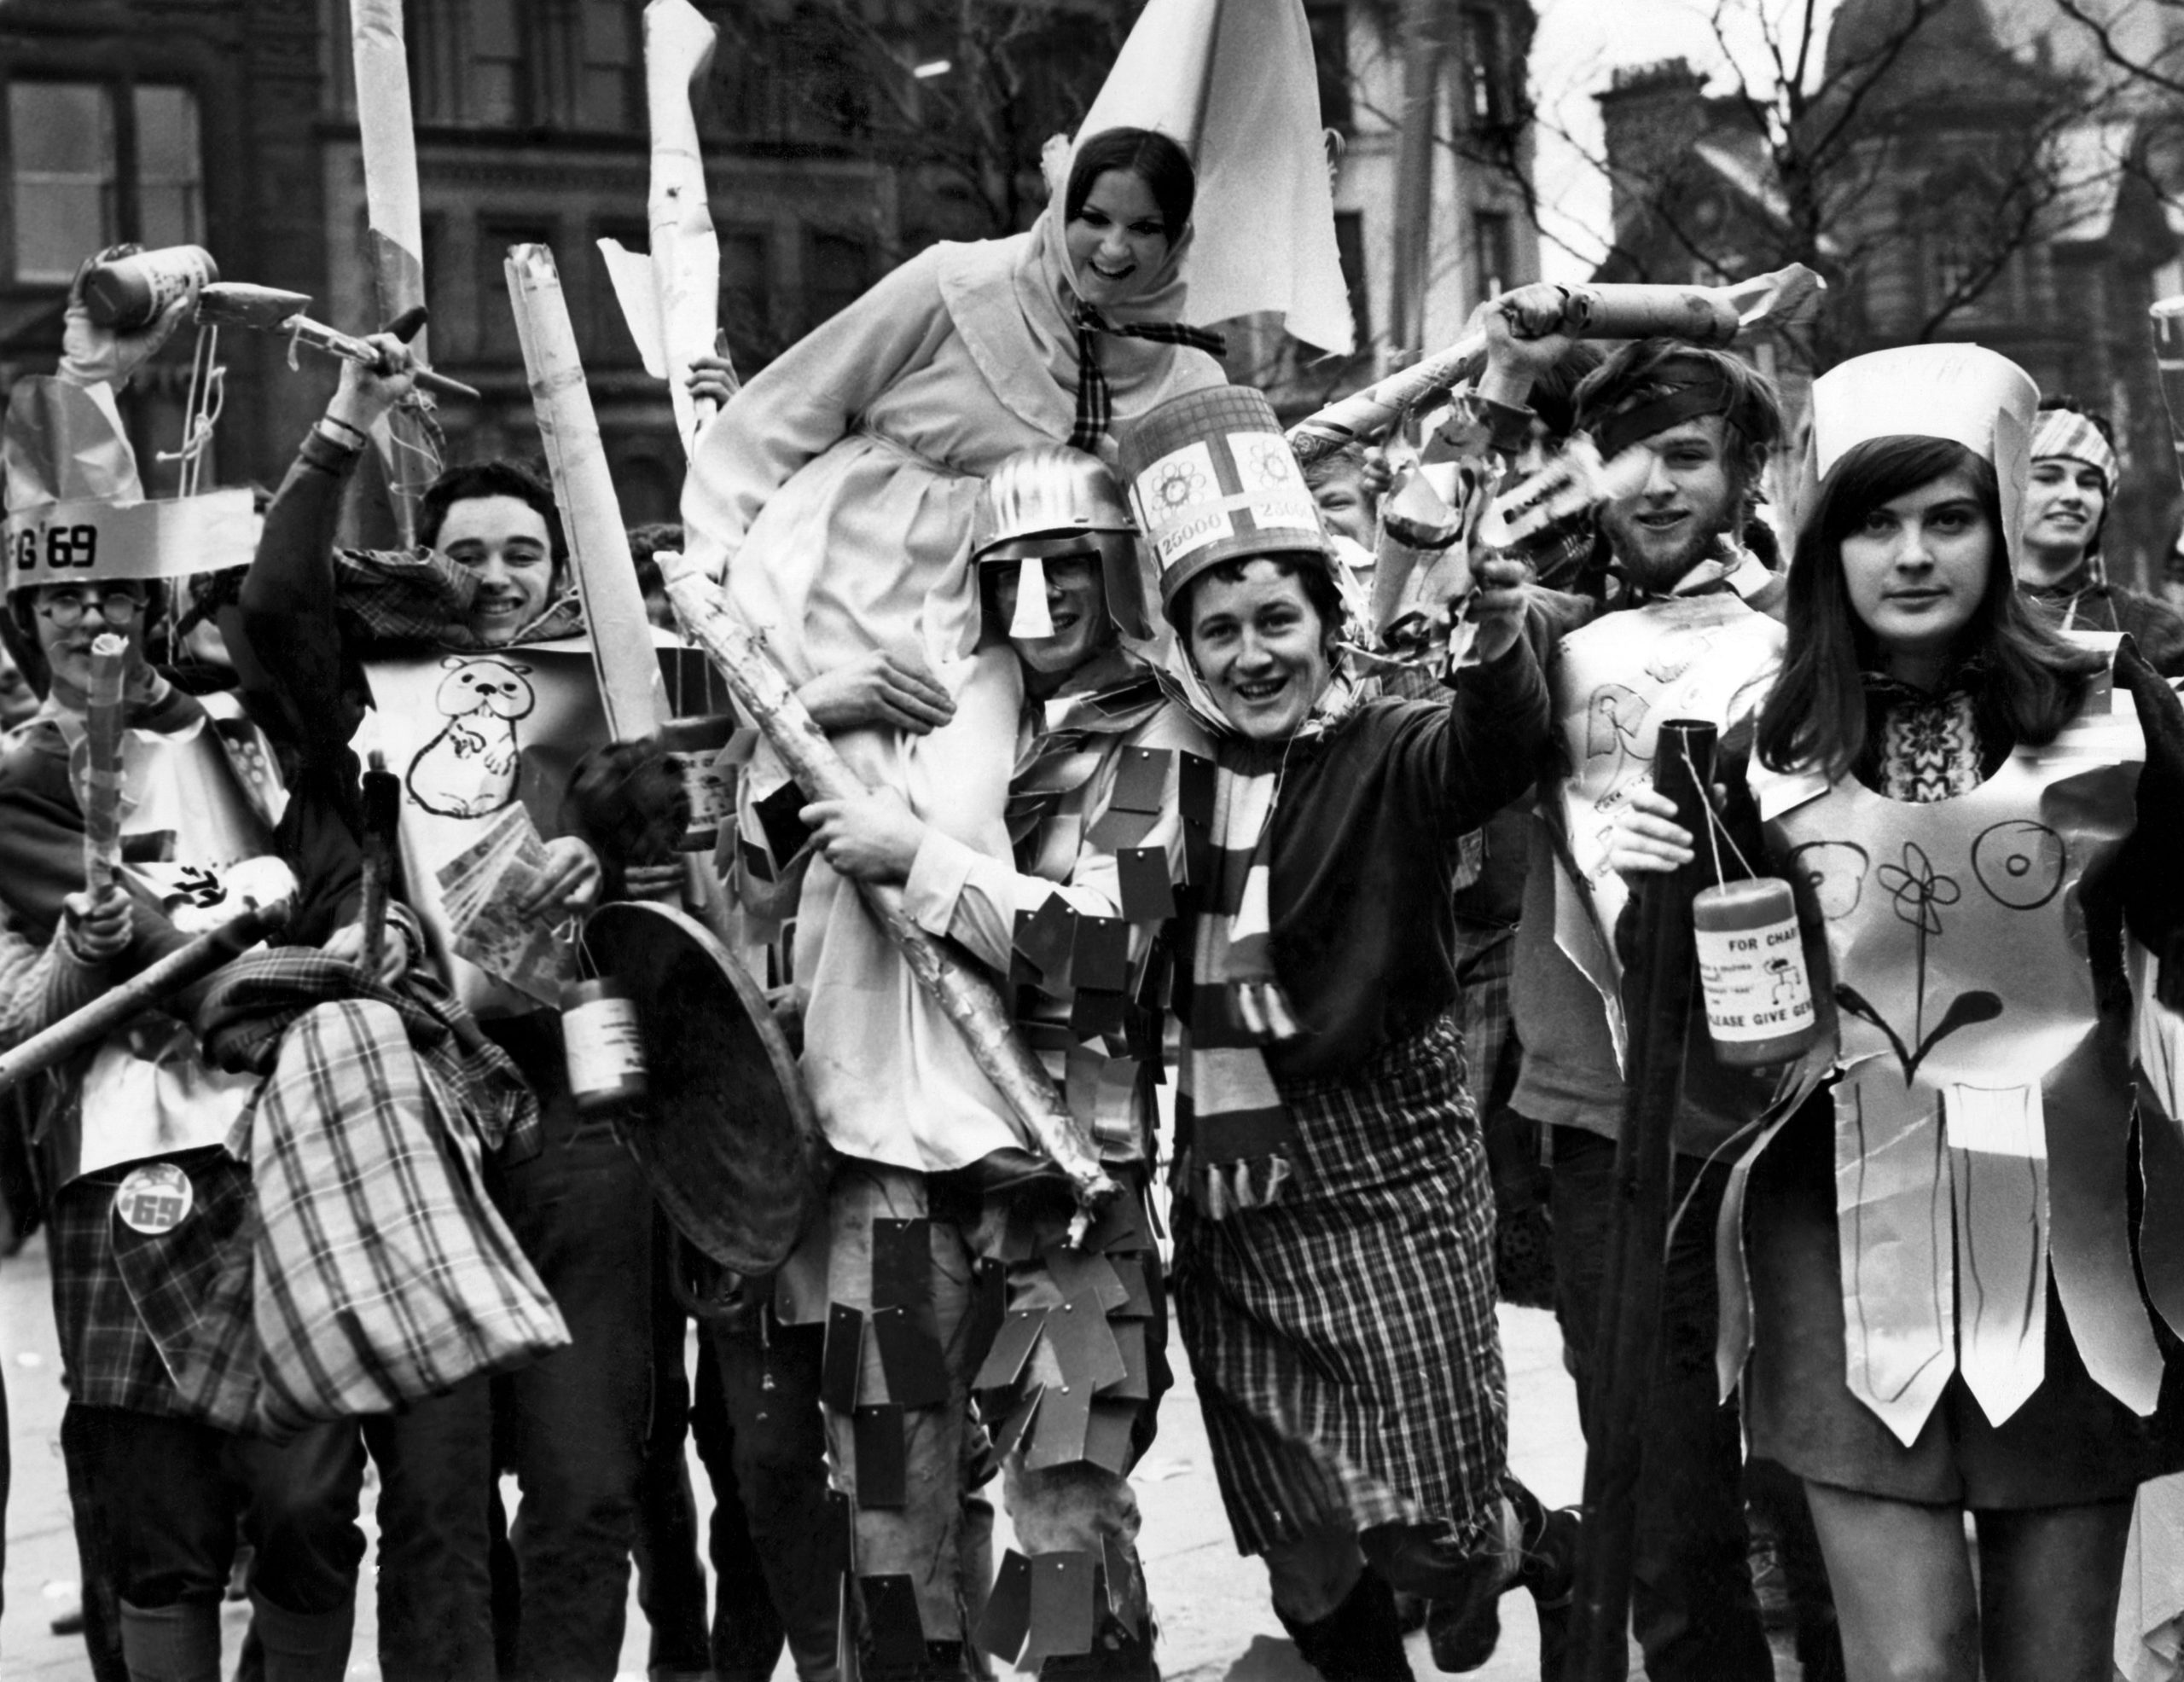 Rag week in 1969, complete with knights, princes, princesses – and damsels in distress.